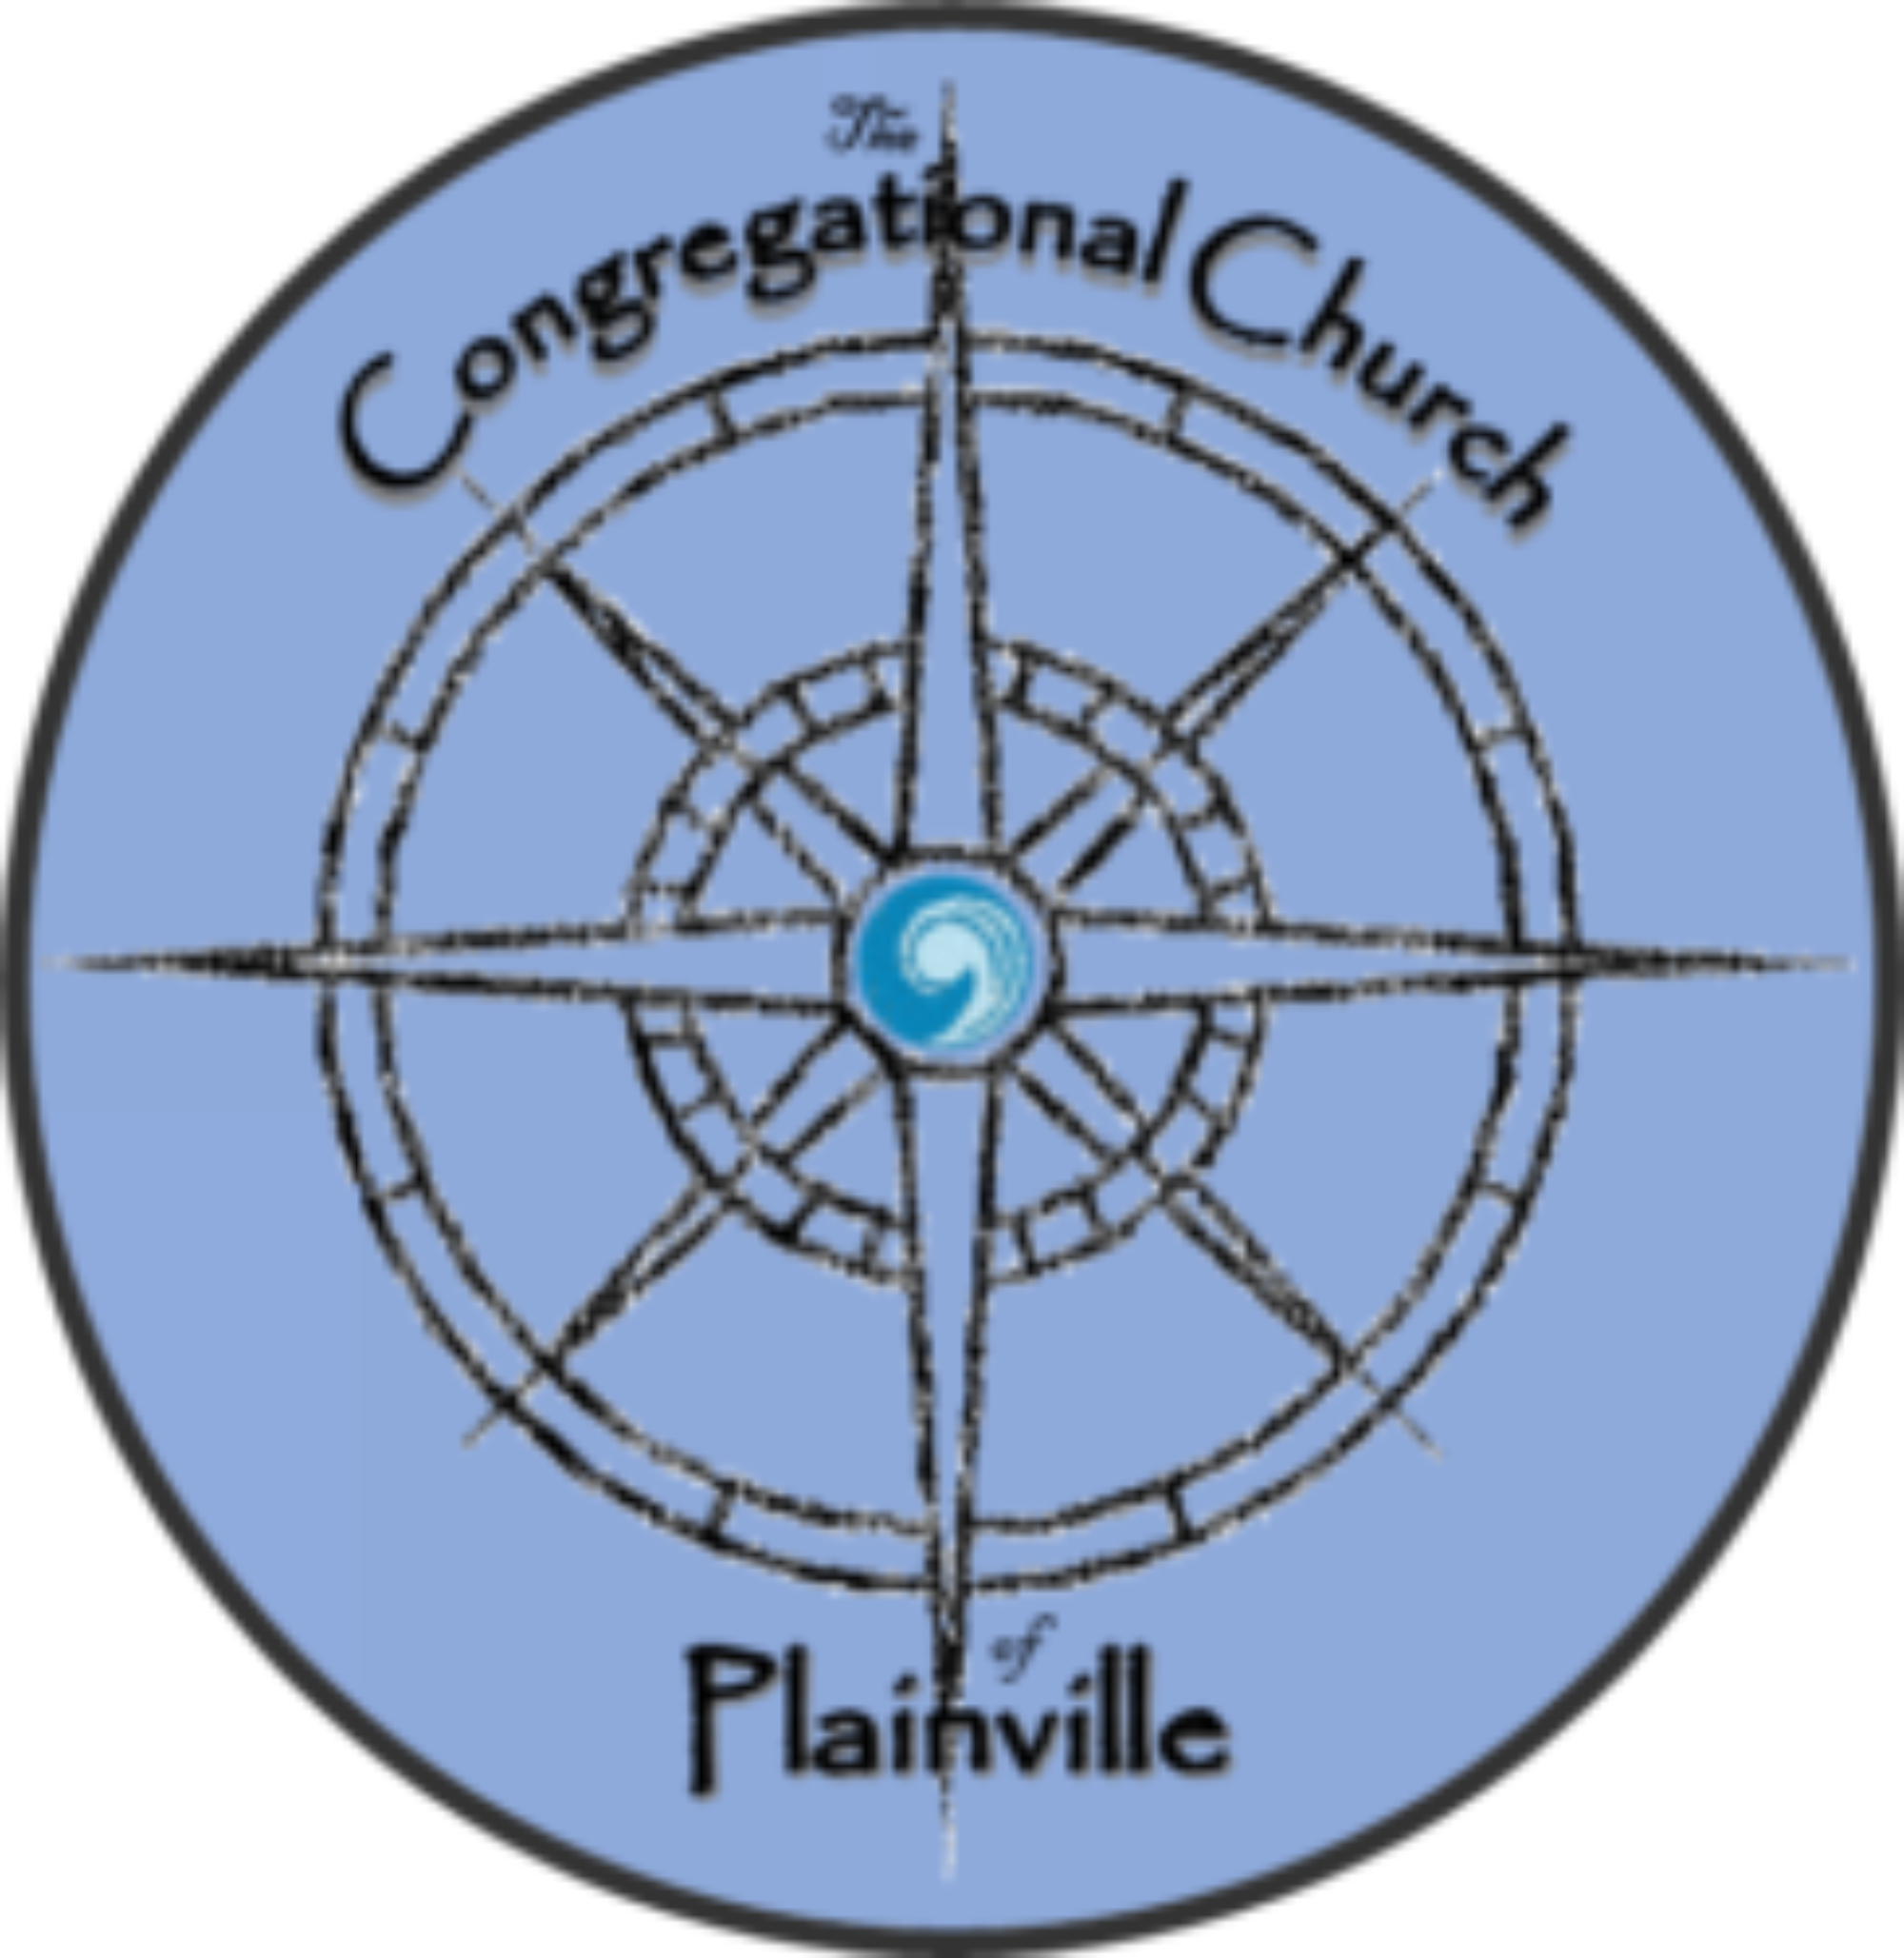 The Congregational Church of Plainville (UCC)